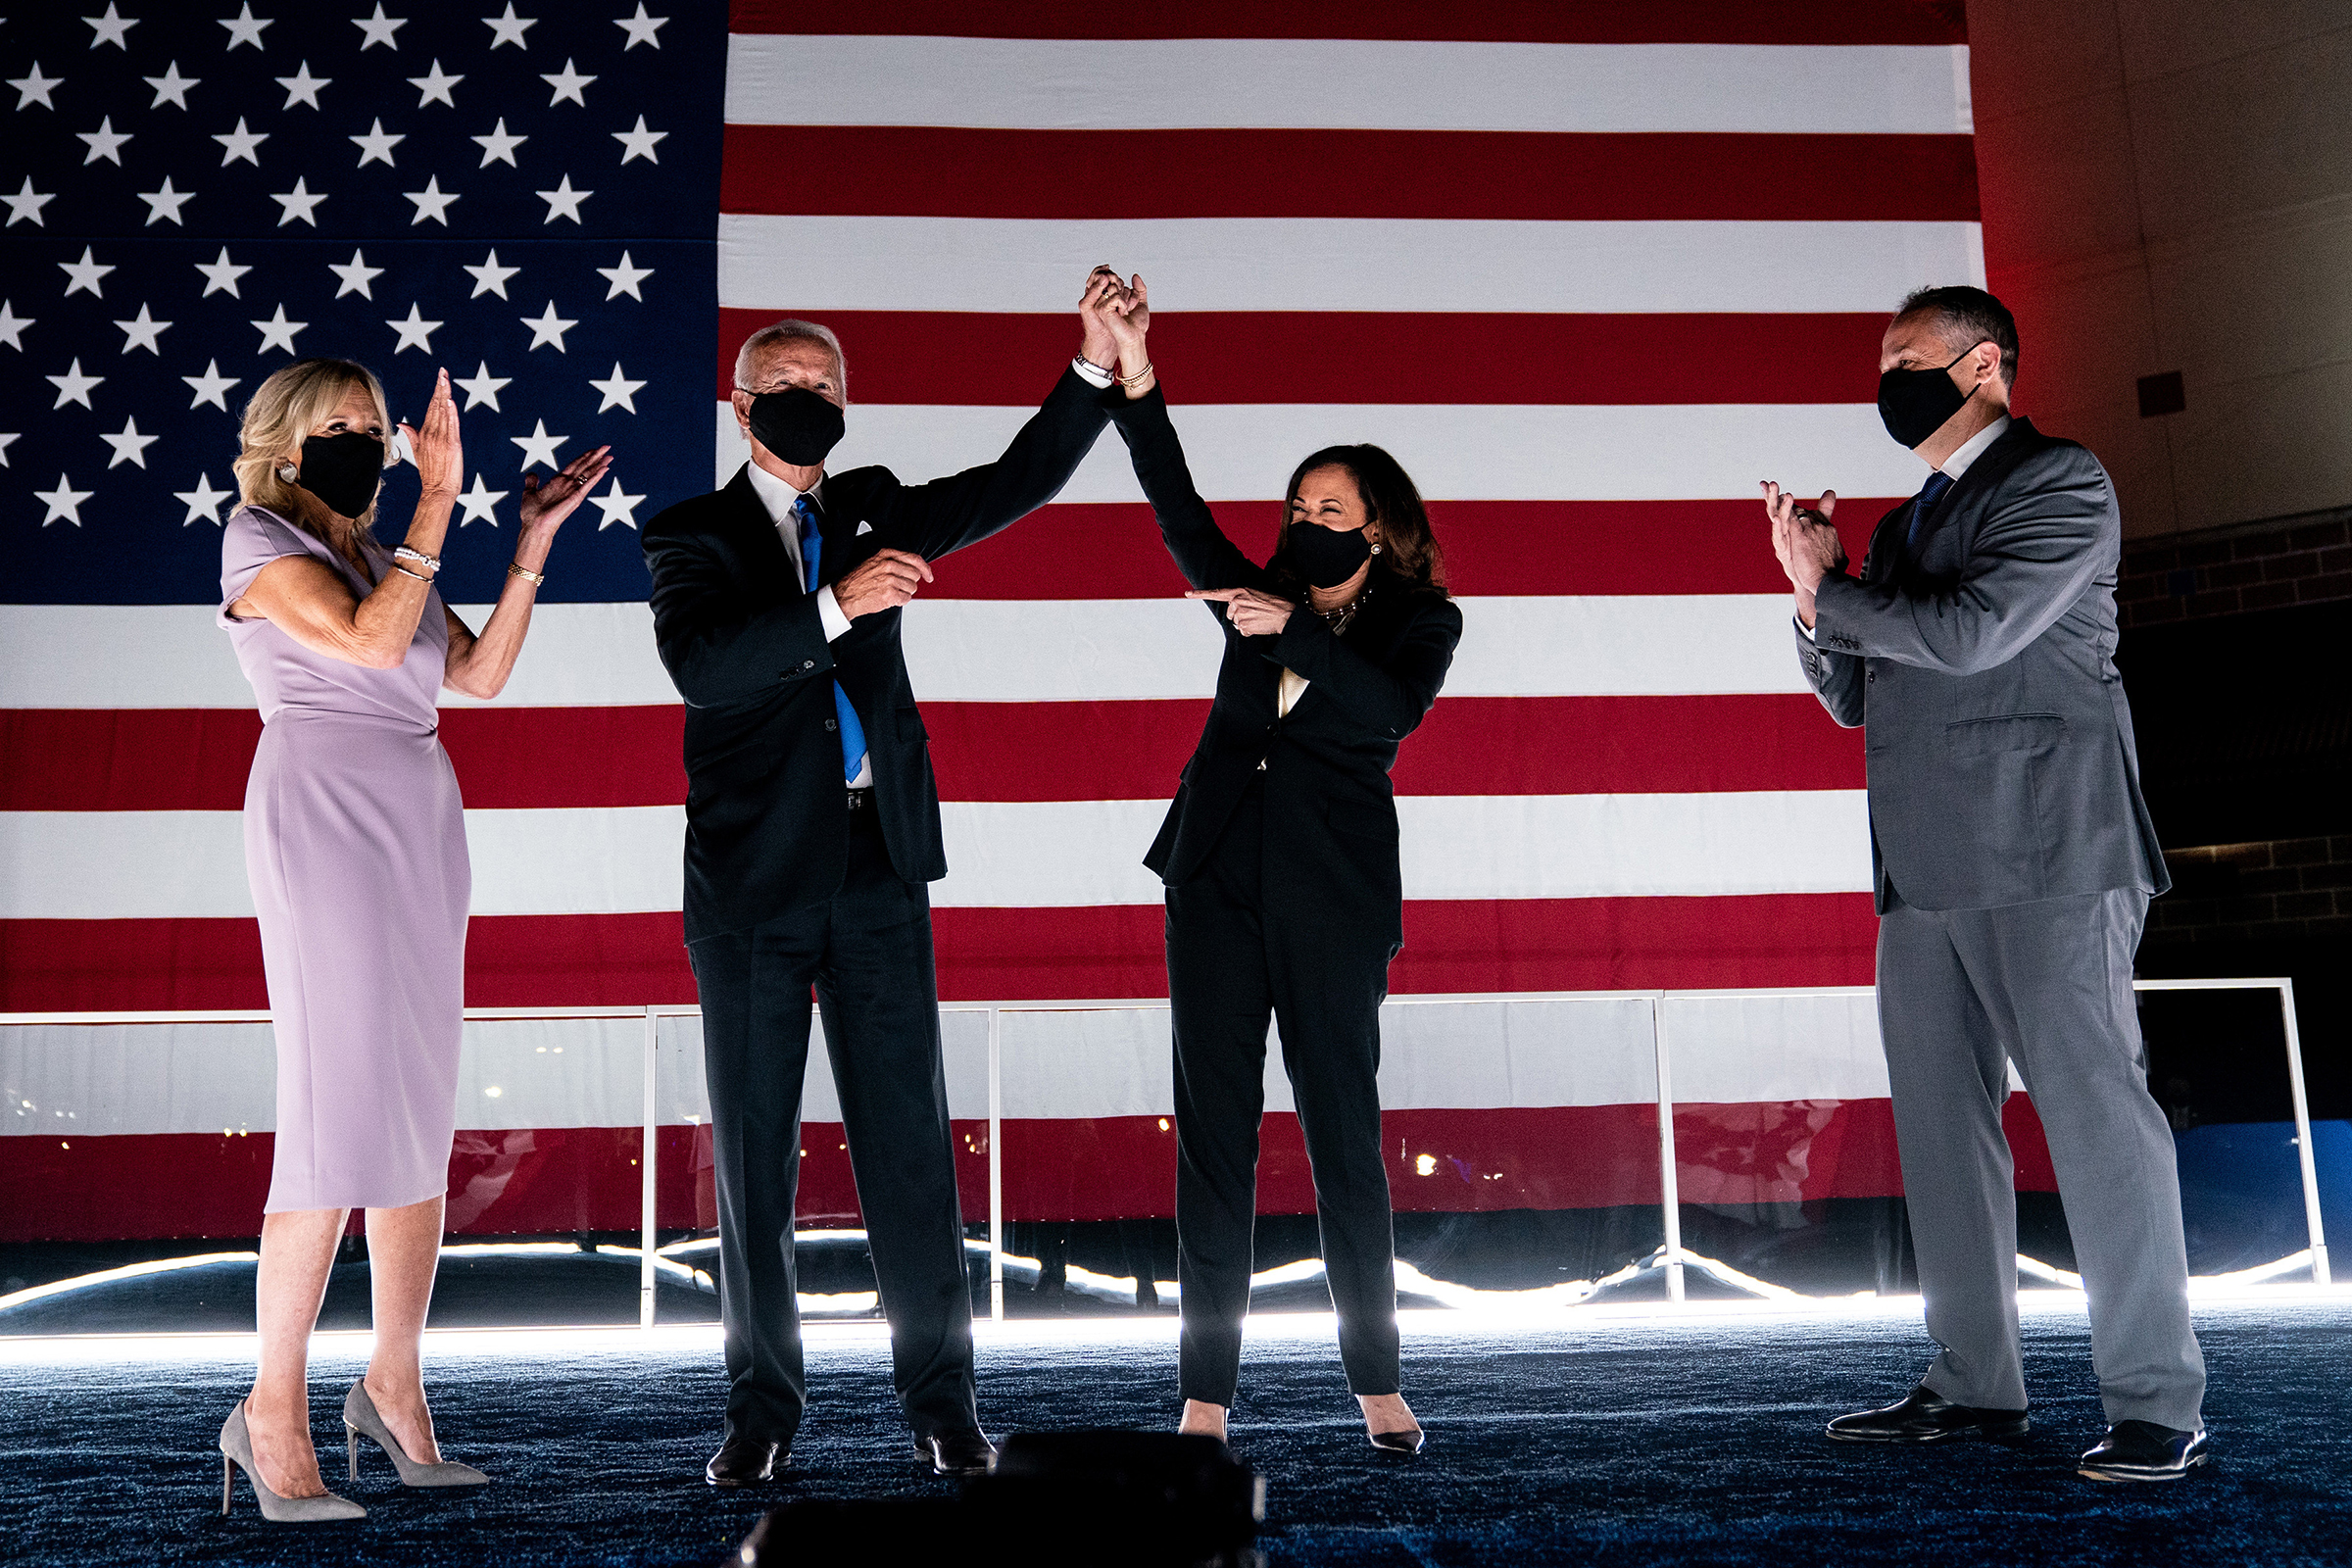 Joe Biden and Sen. Kamala Harris are applauded by their spouses, Jill Biden and Douglas Emhoff, shortly after Biden accepted his party's presidential nomination during the Democratic National Convention in Wilmington, Del., on Aug. 20, 2020.